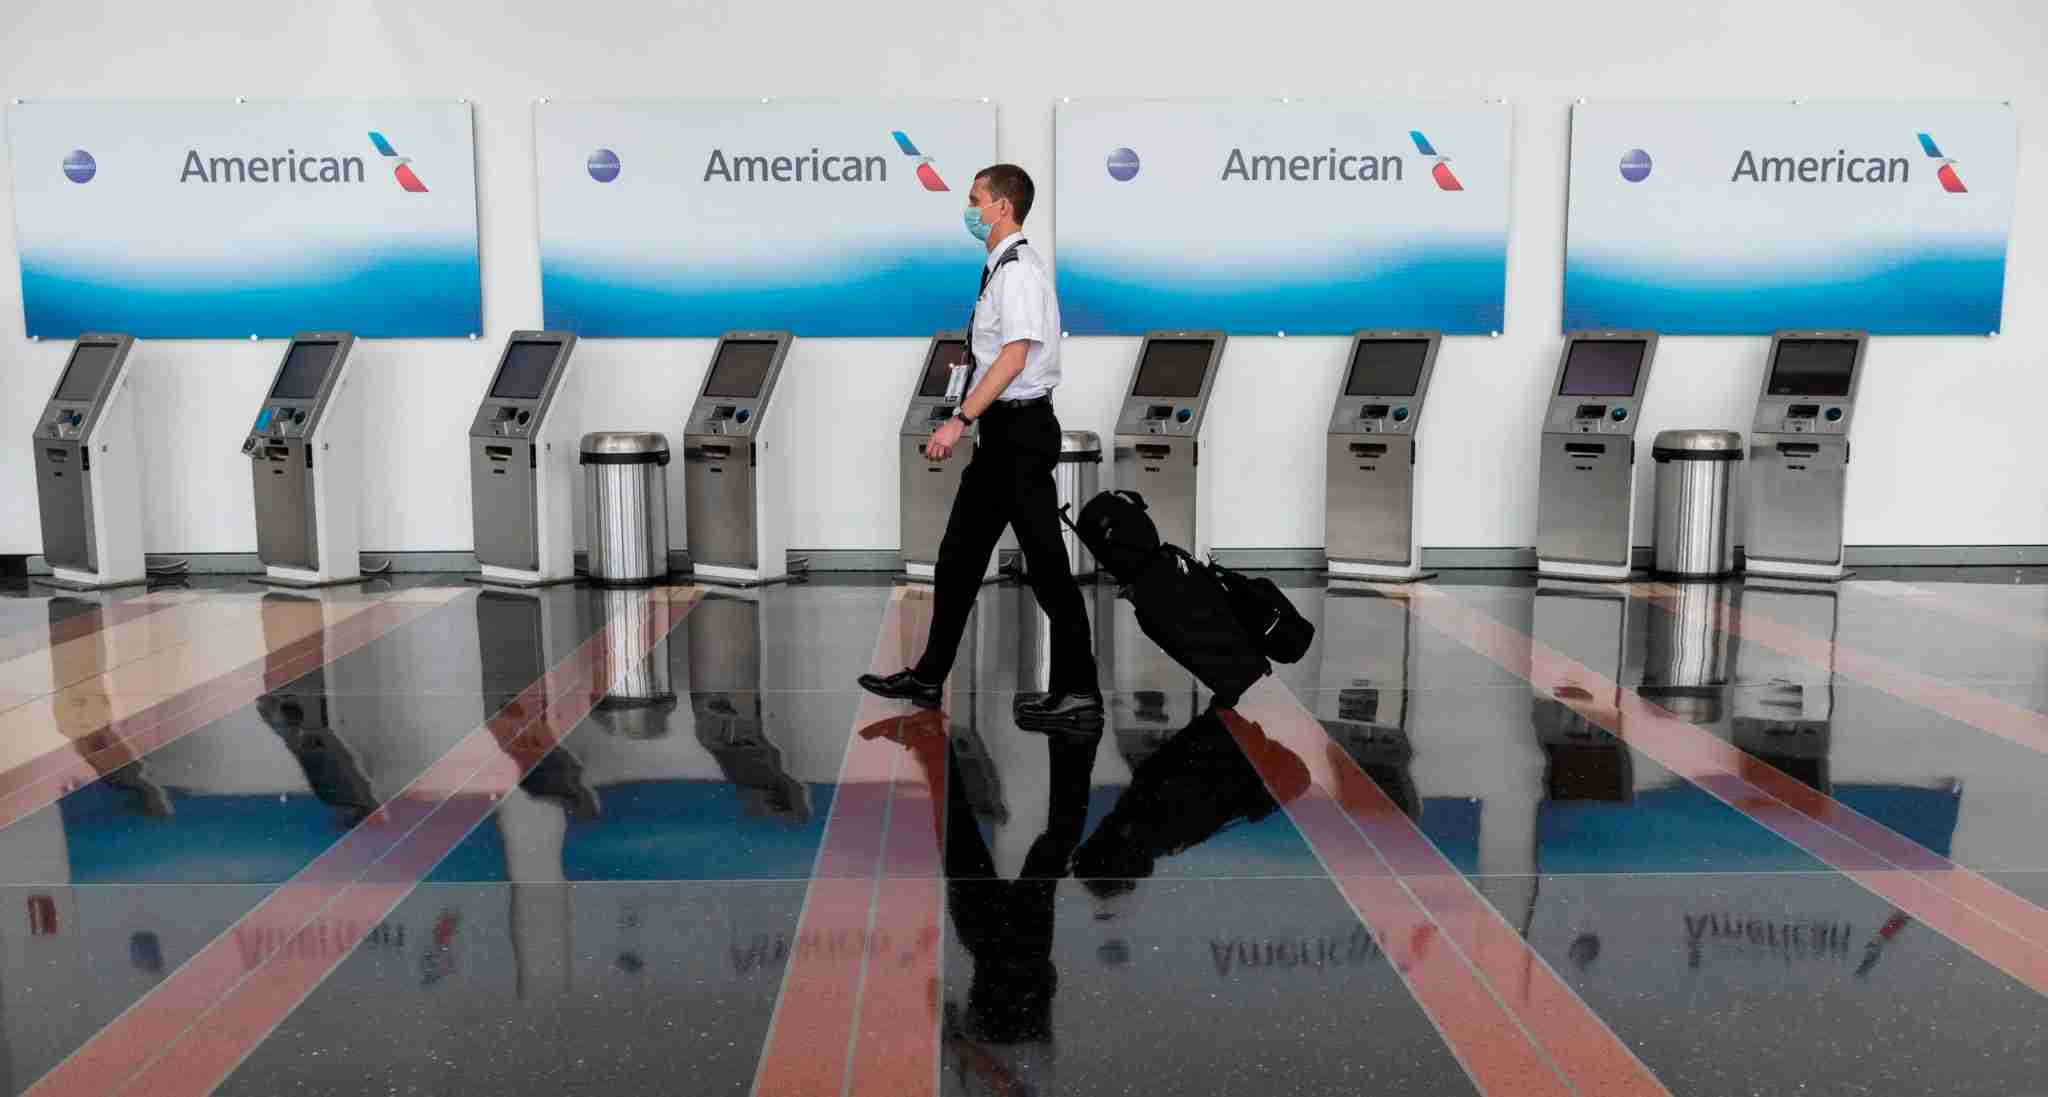 An airline employee walks past empty American Airlines check-in terminals at Ronald Reagan Washington National Airport in Arlington, Virginia, on May 12, 2020. - The airline industry has been hit hard by the COVID-19 pandemic, with the number of people flying having decreased by more than 90 percent since the beginning of March. (Photo by ANDREW CABALLERO-REYNOLDS / AFP) (Photo by ANDREW CABALLERO-REYNOLDS/AFP via Getty Images)